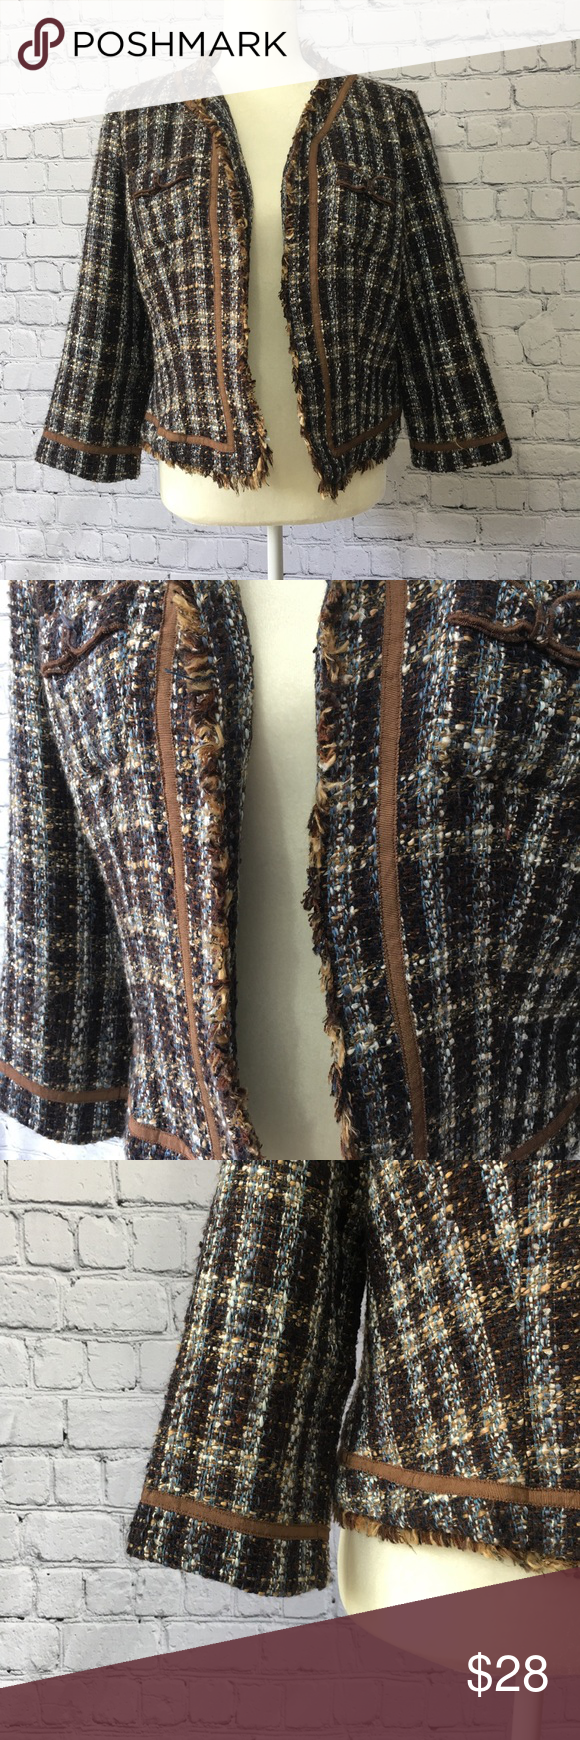 True Meaning tweed style Woman's Blazer Tweed plaid style